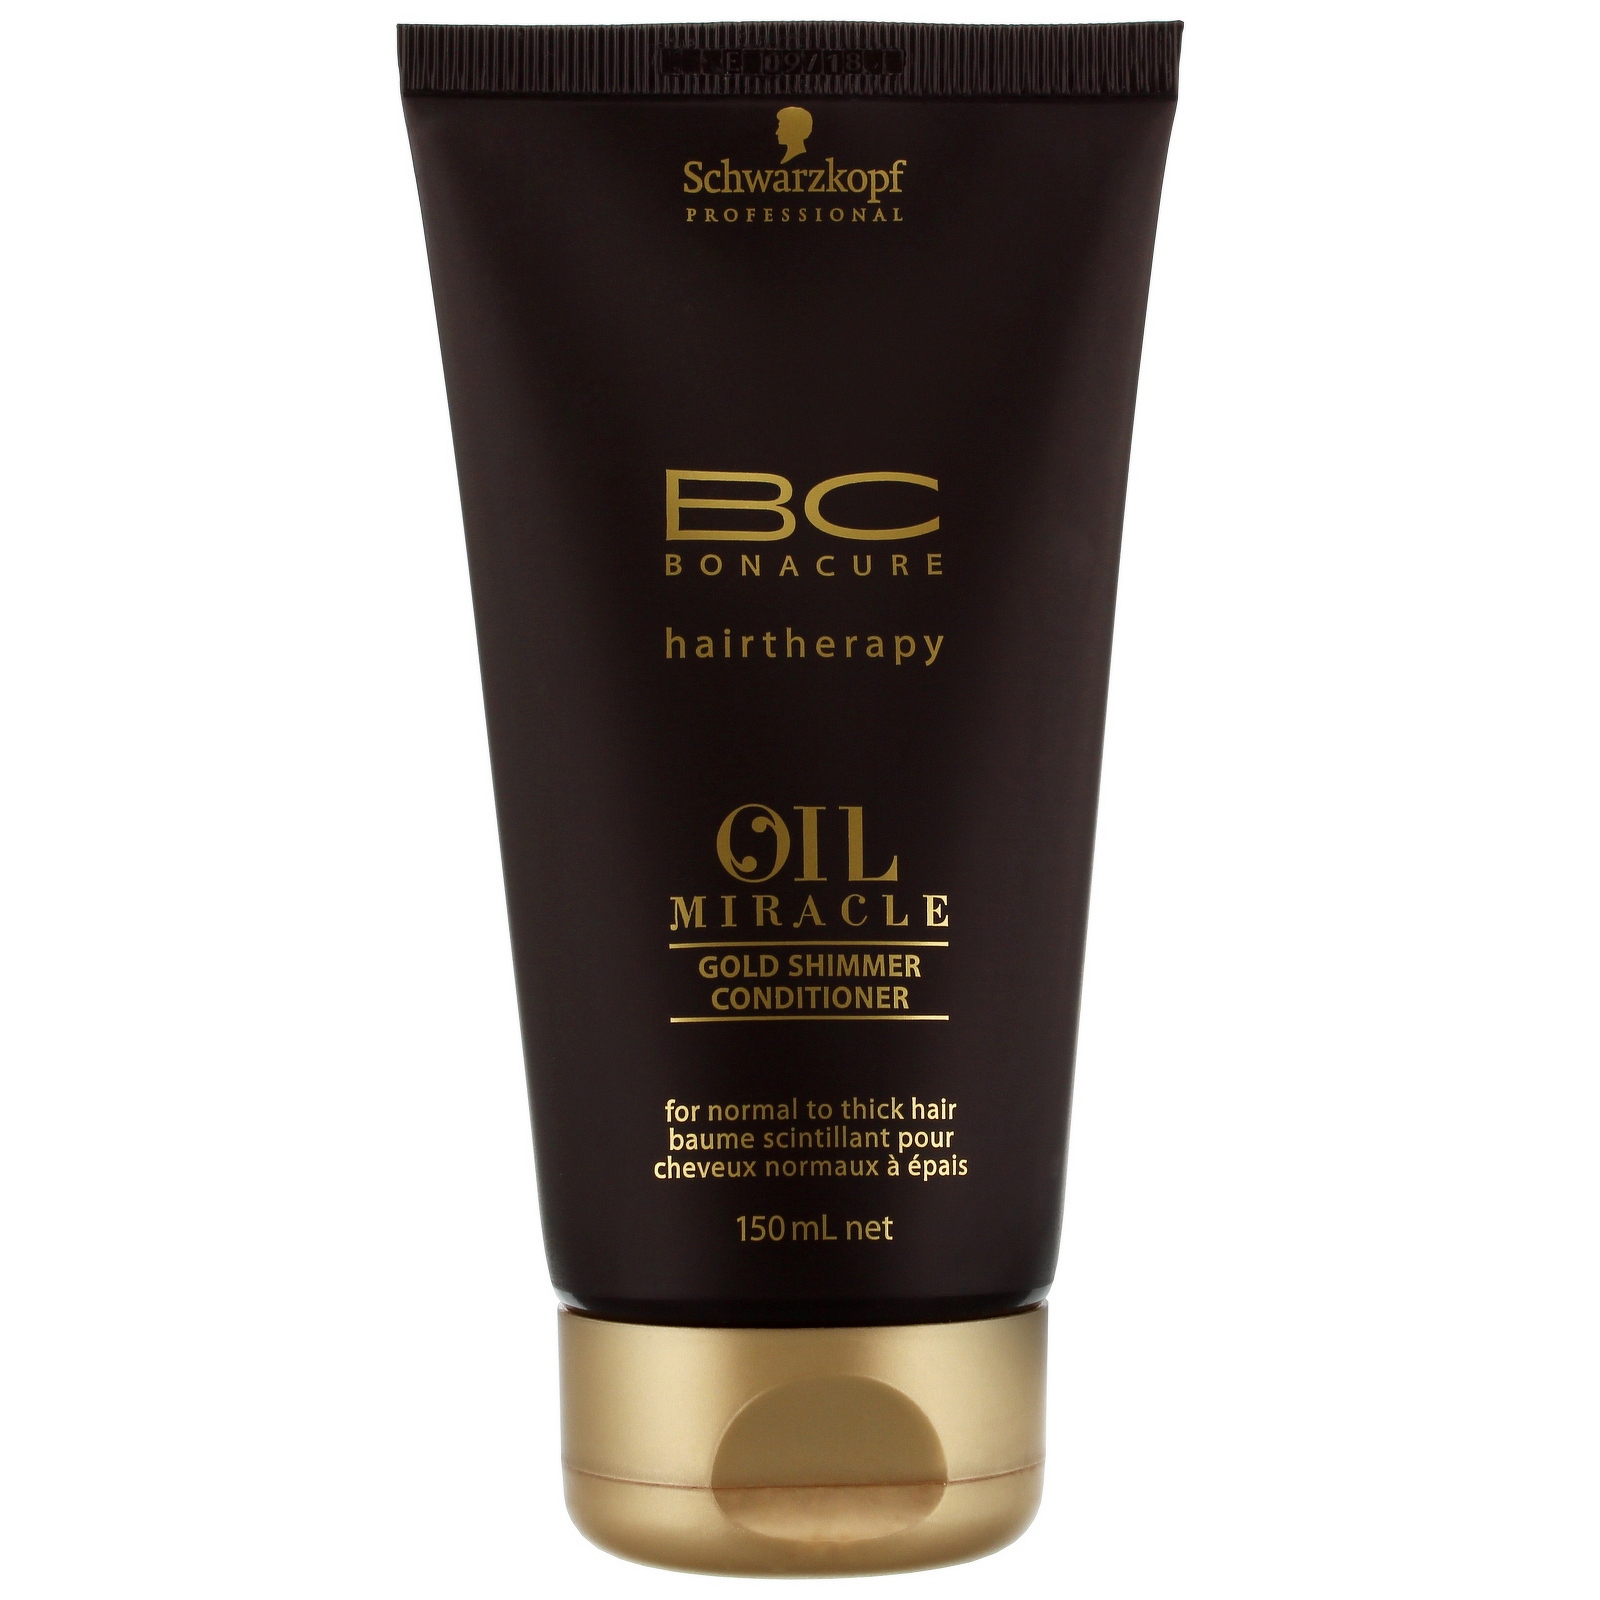 Schwarzkopf Bc Bonacure Oil Miracle Gold Shimmer